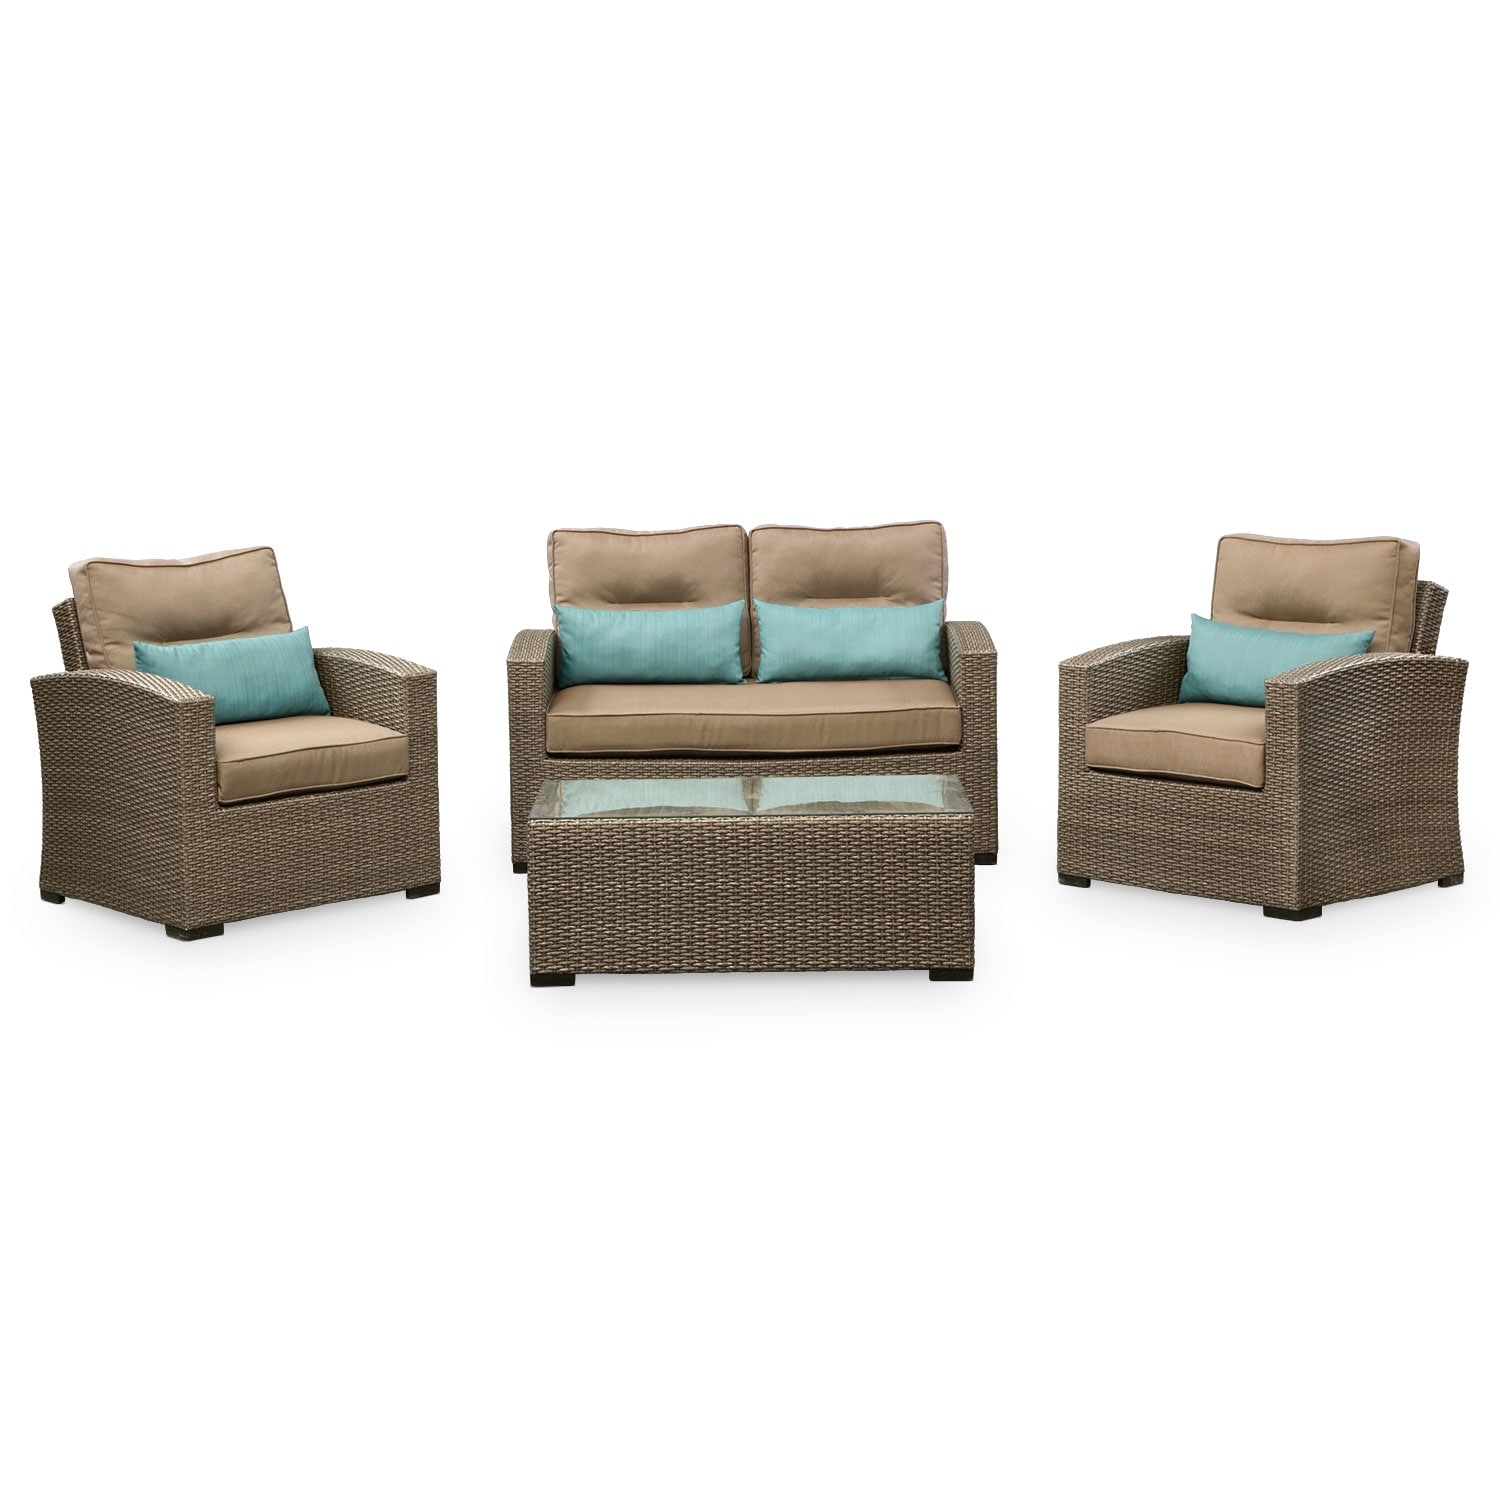 Patio Furniture For Living Room: Corona Outdoor Furniture 4 Pc. Outdoor Living Room